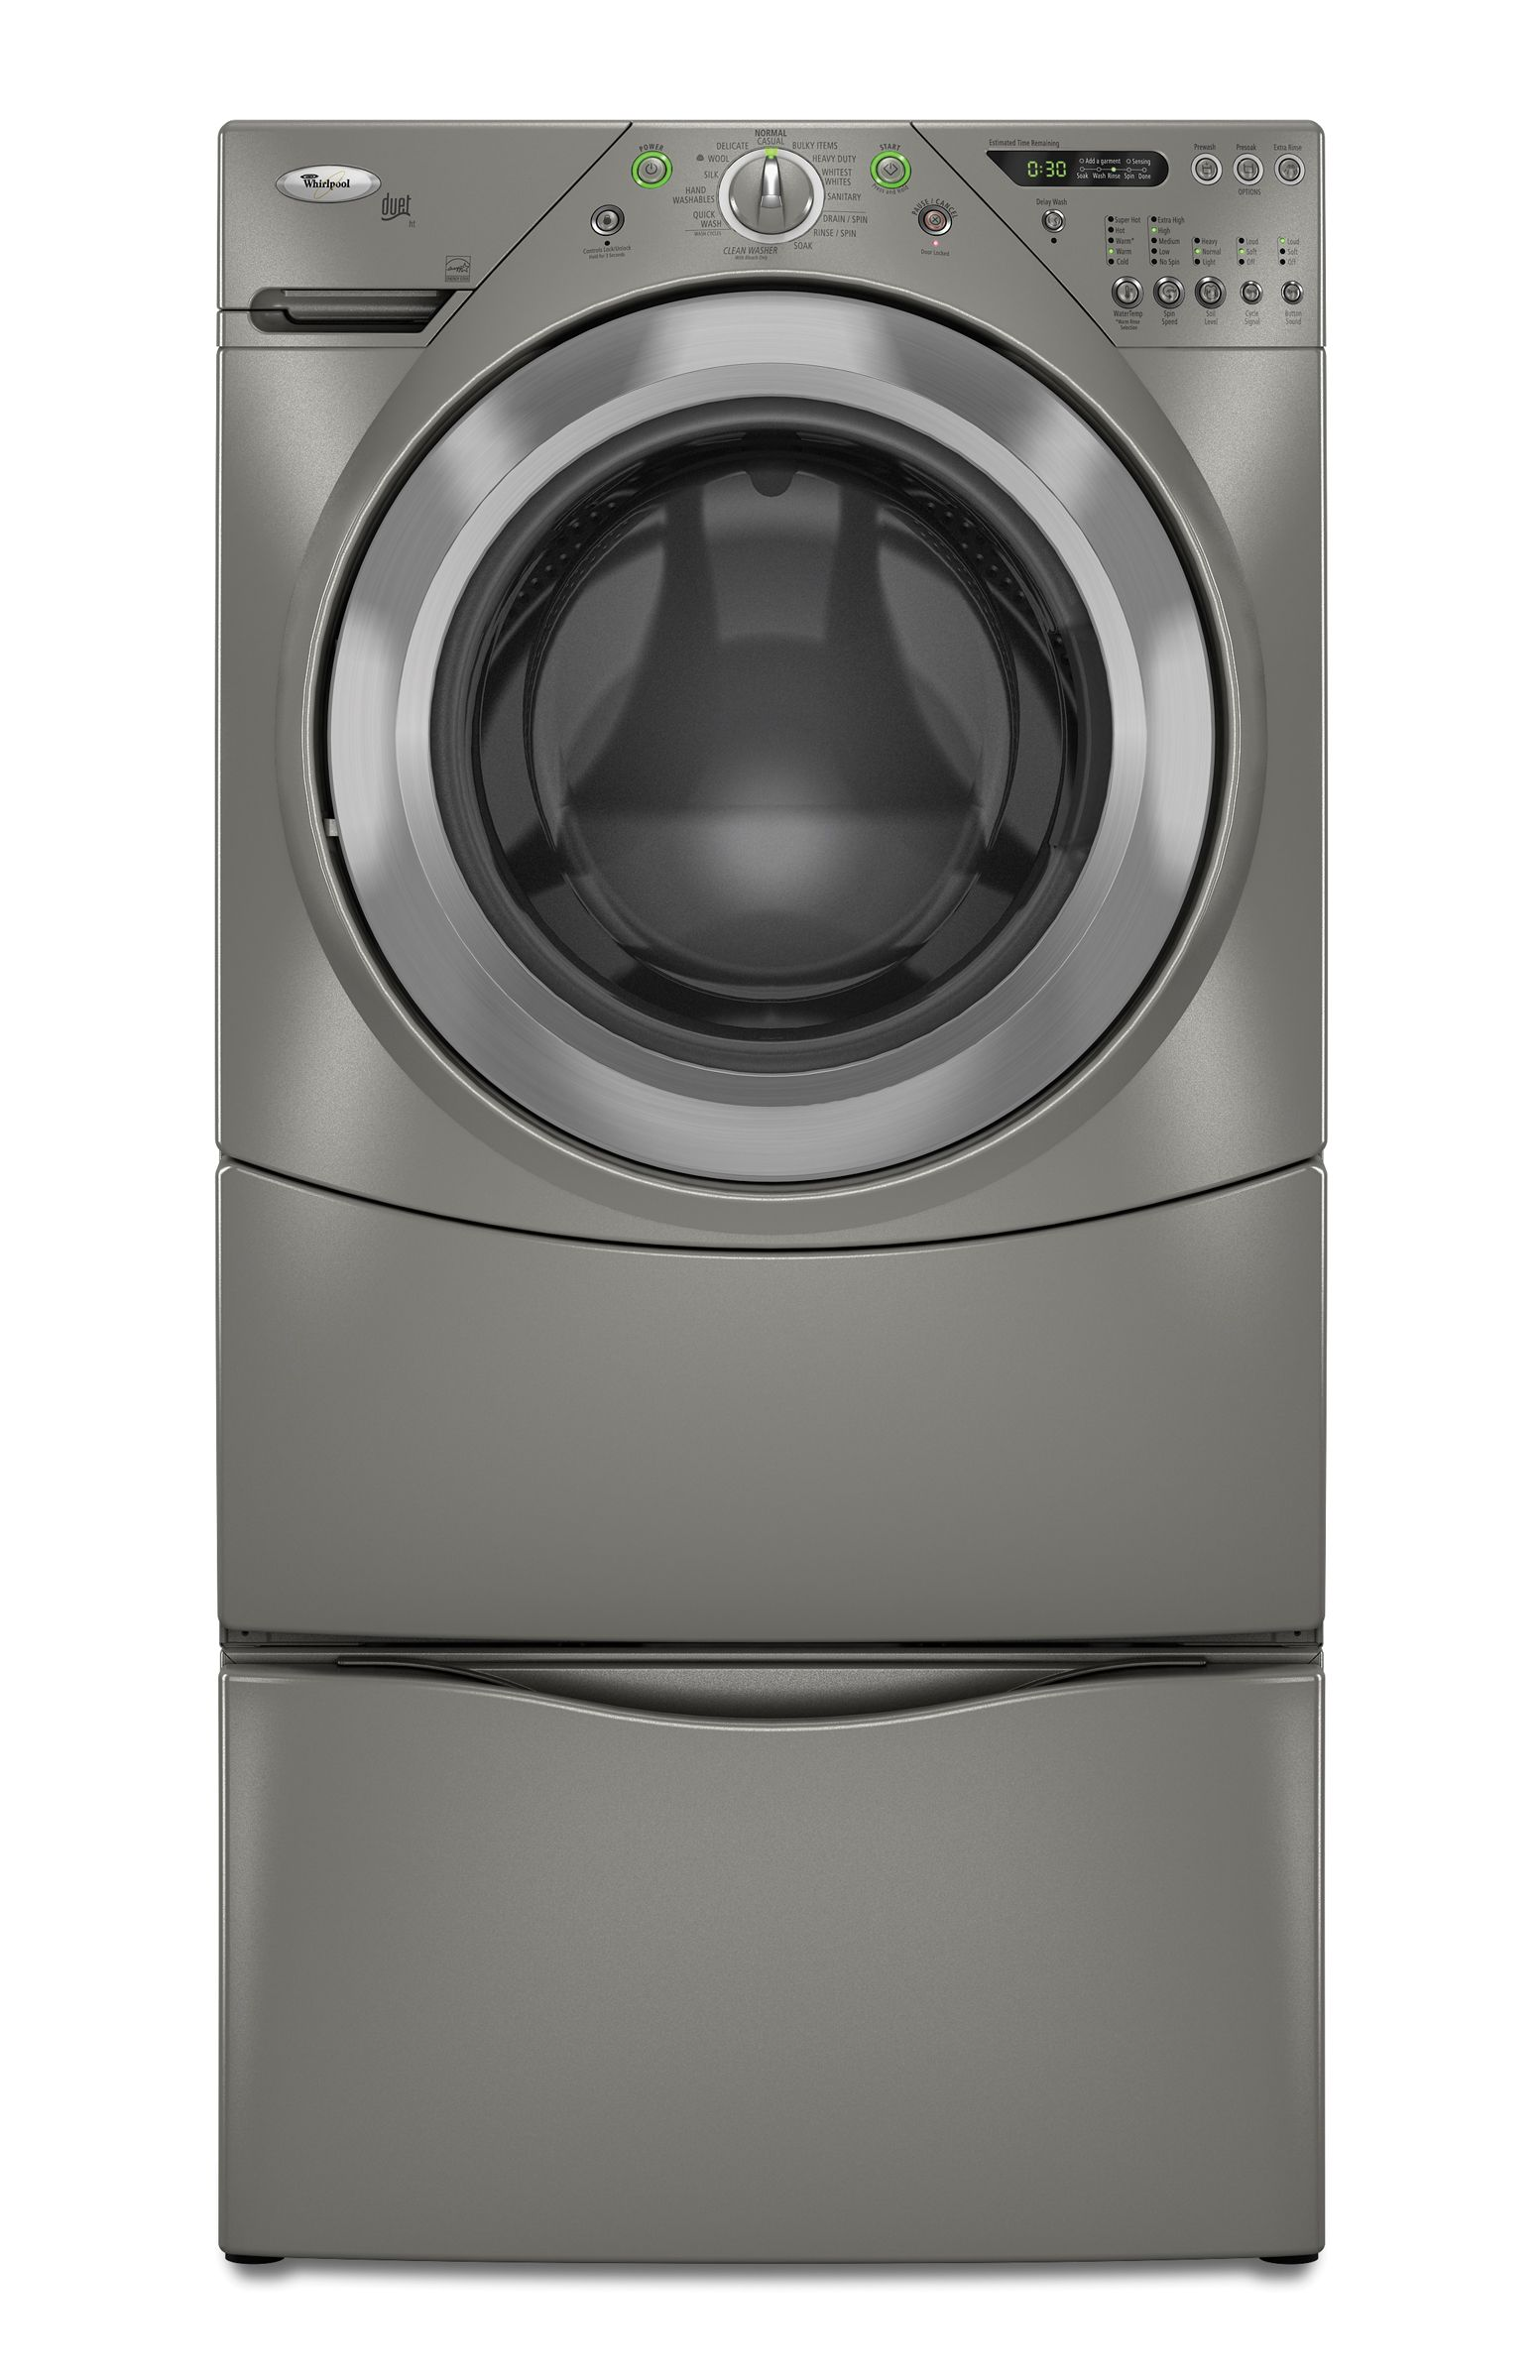 Whirlpool Duet HT® 4.0 I.E.C. cu. ft. Ultra Capacity Plus Front-Load Washer